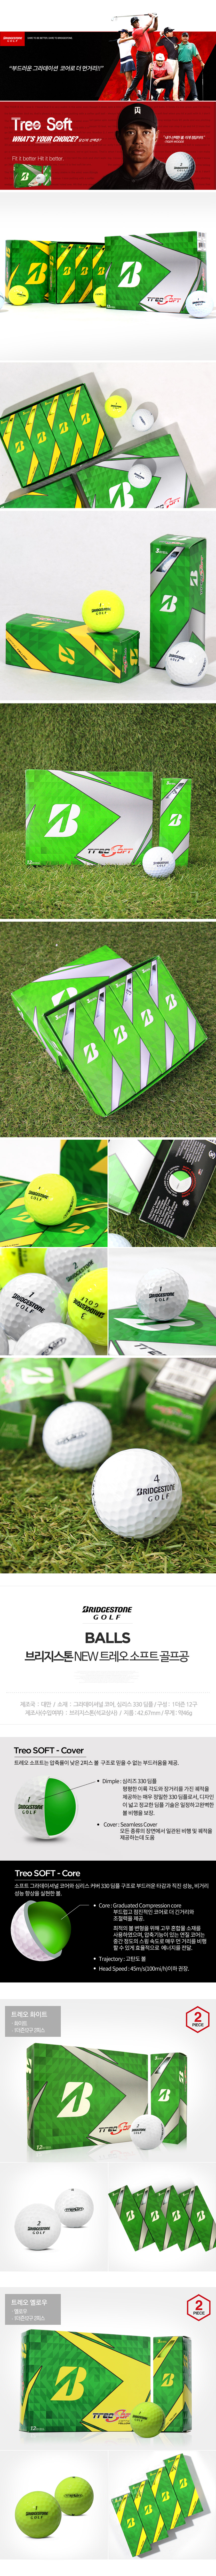 bridgestone_treo_soft_ball_19.jpg